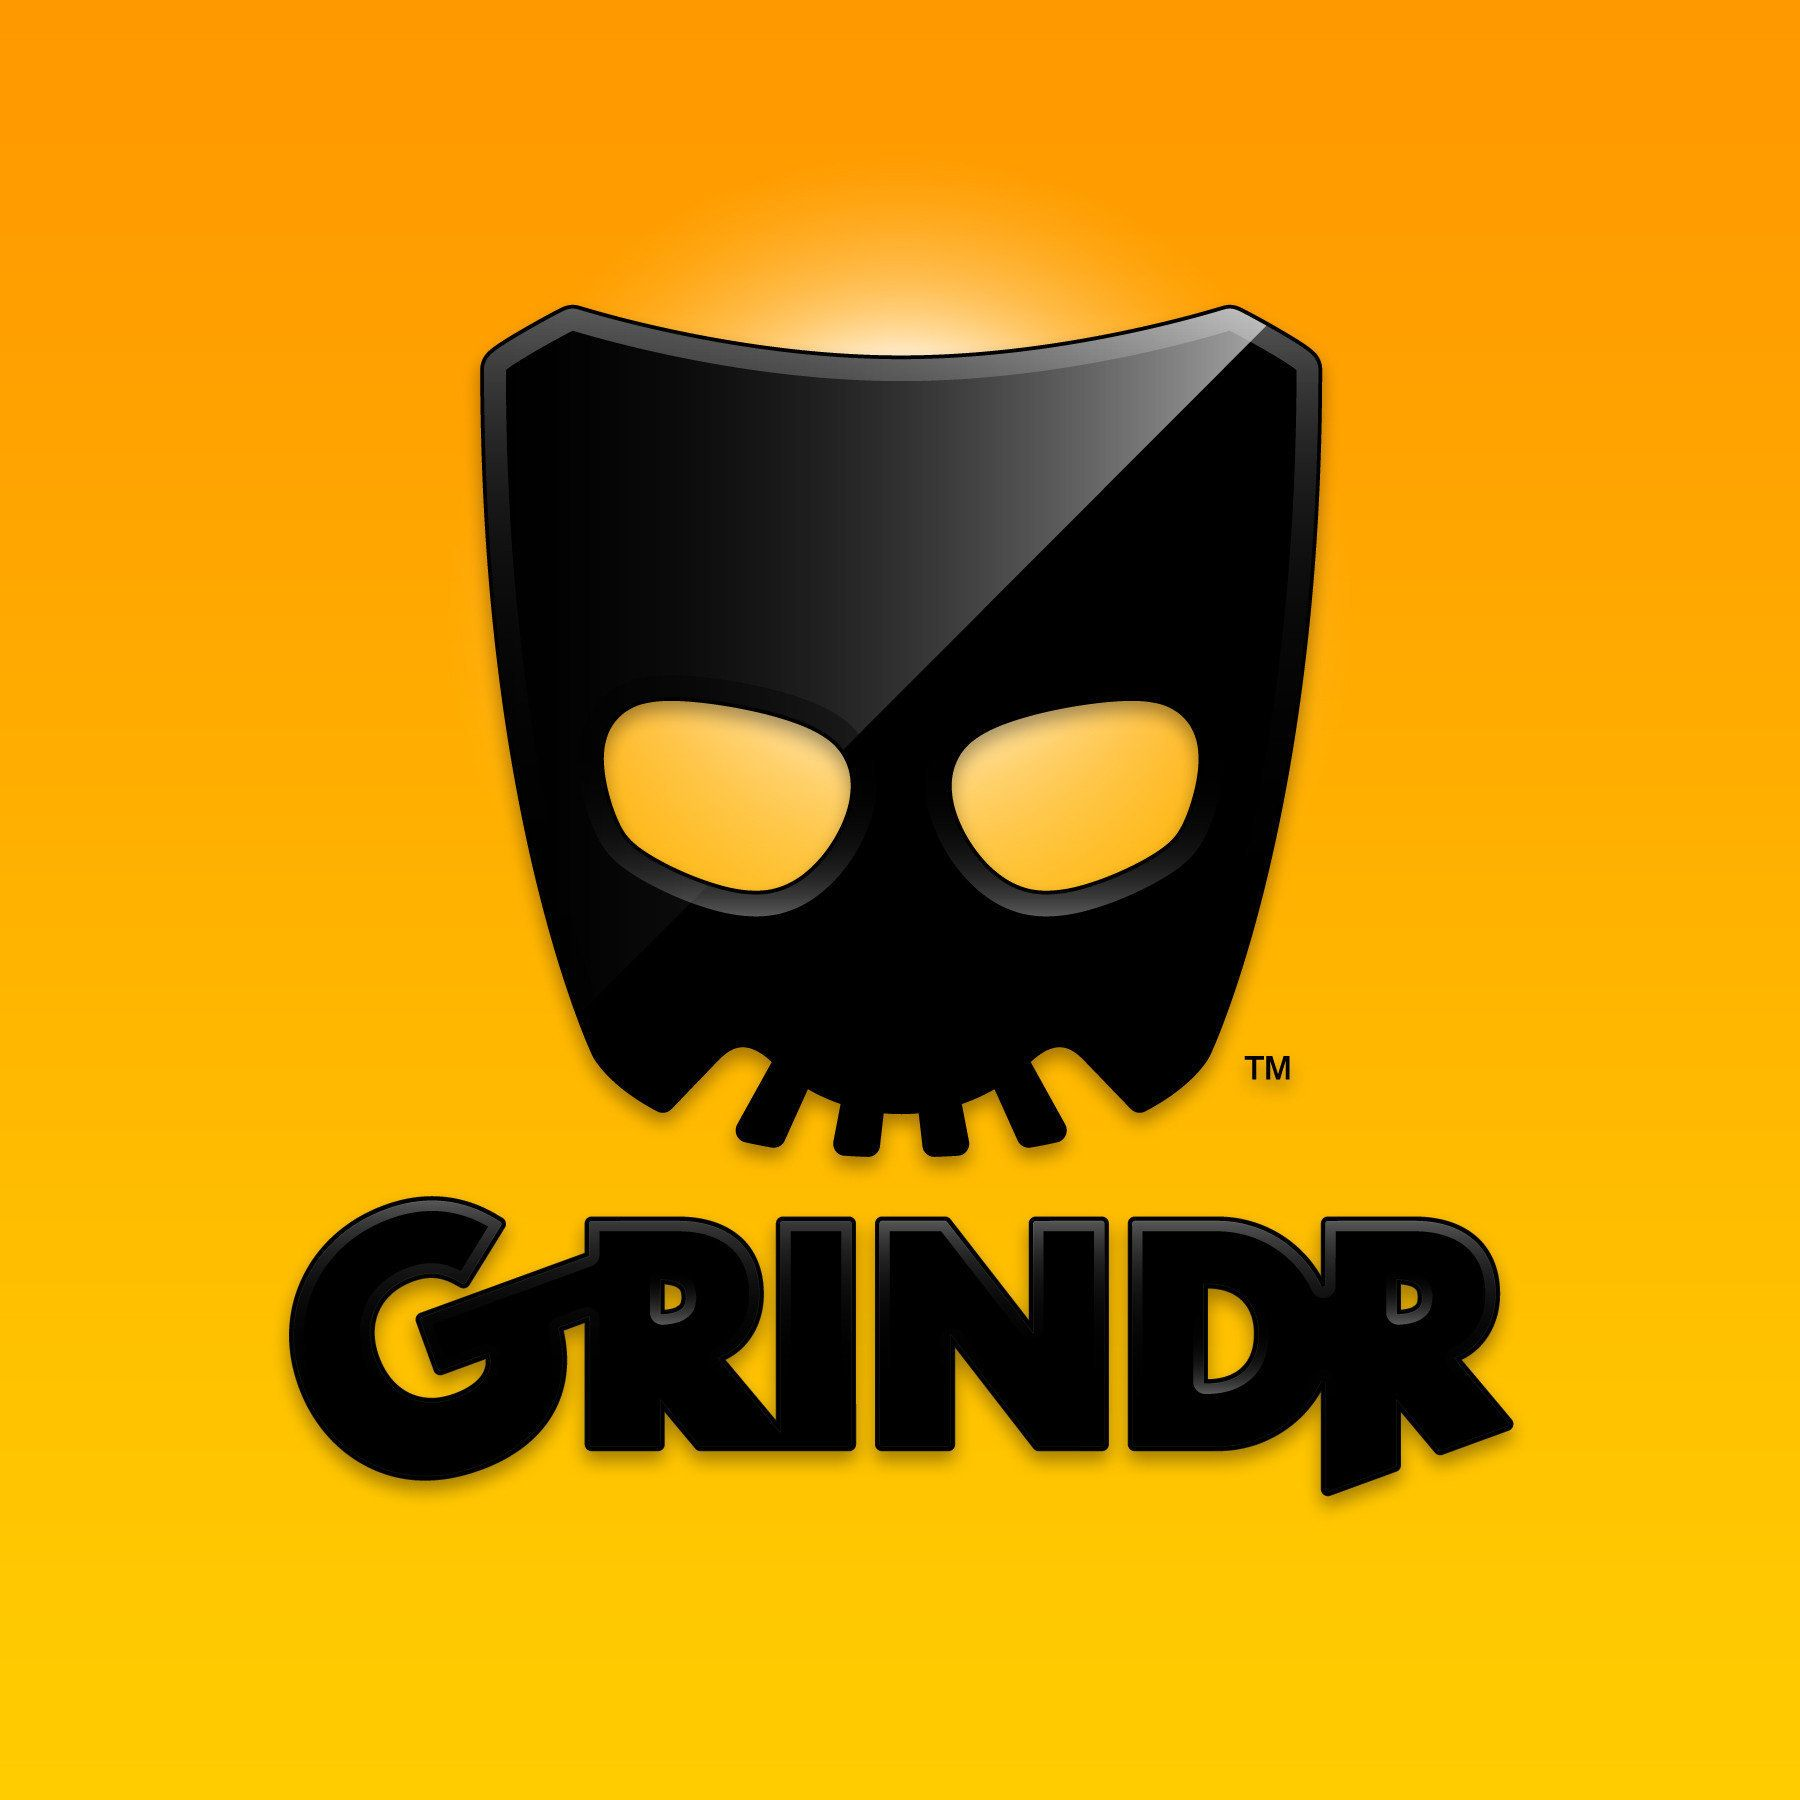 Gay friendly dating sites like grindr